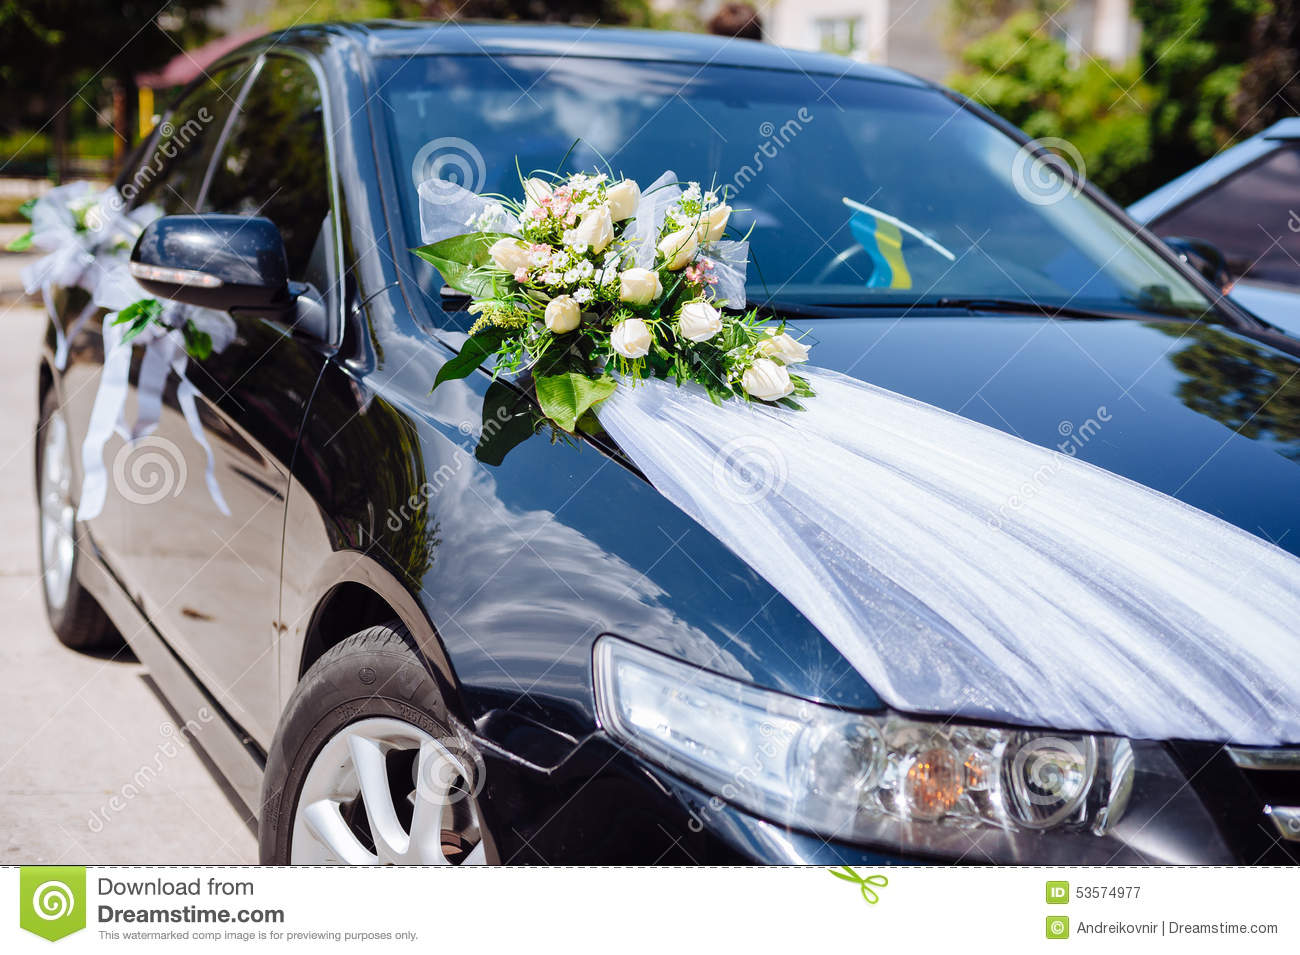 What was your car at the wedding 69